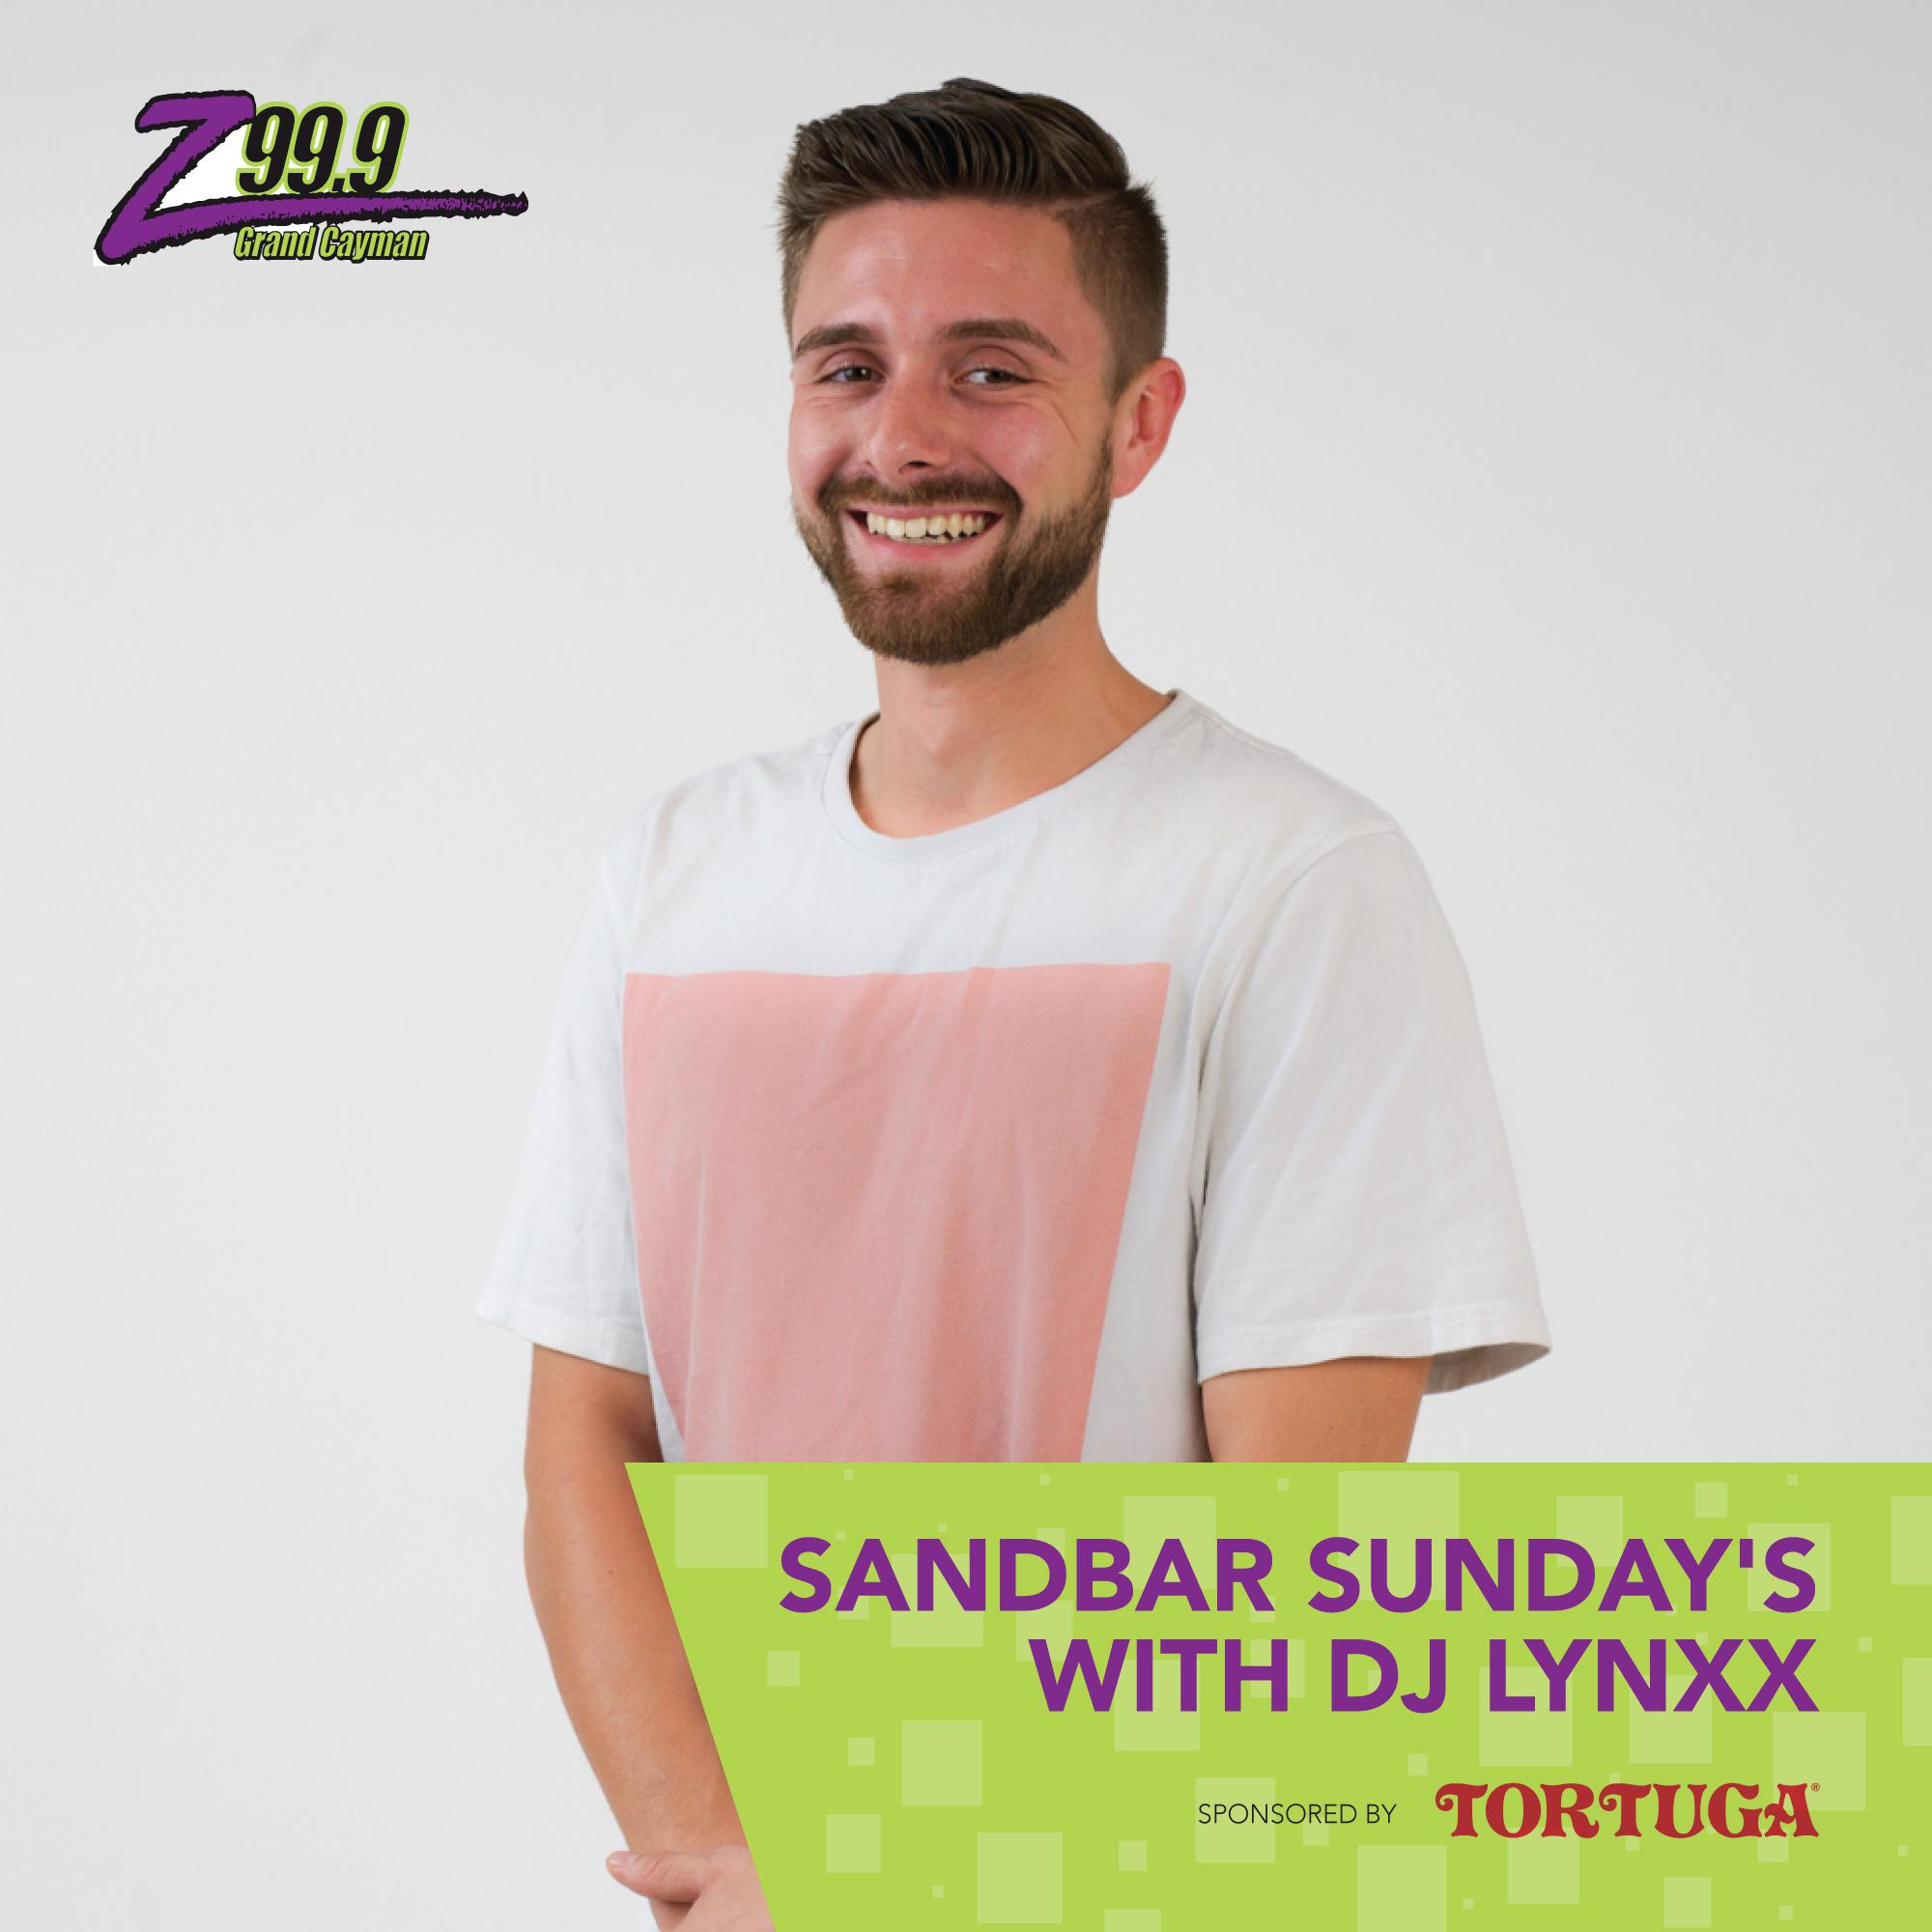 Sandbar Sundays Mix With DJ LYNXX | Z99 Grand Cayman